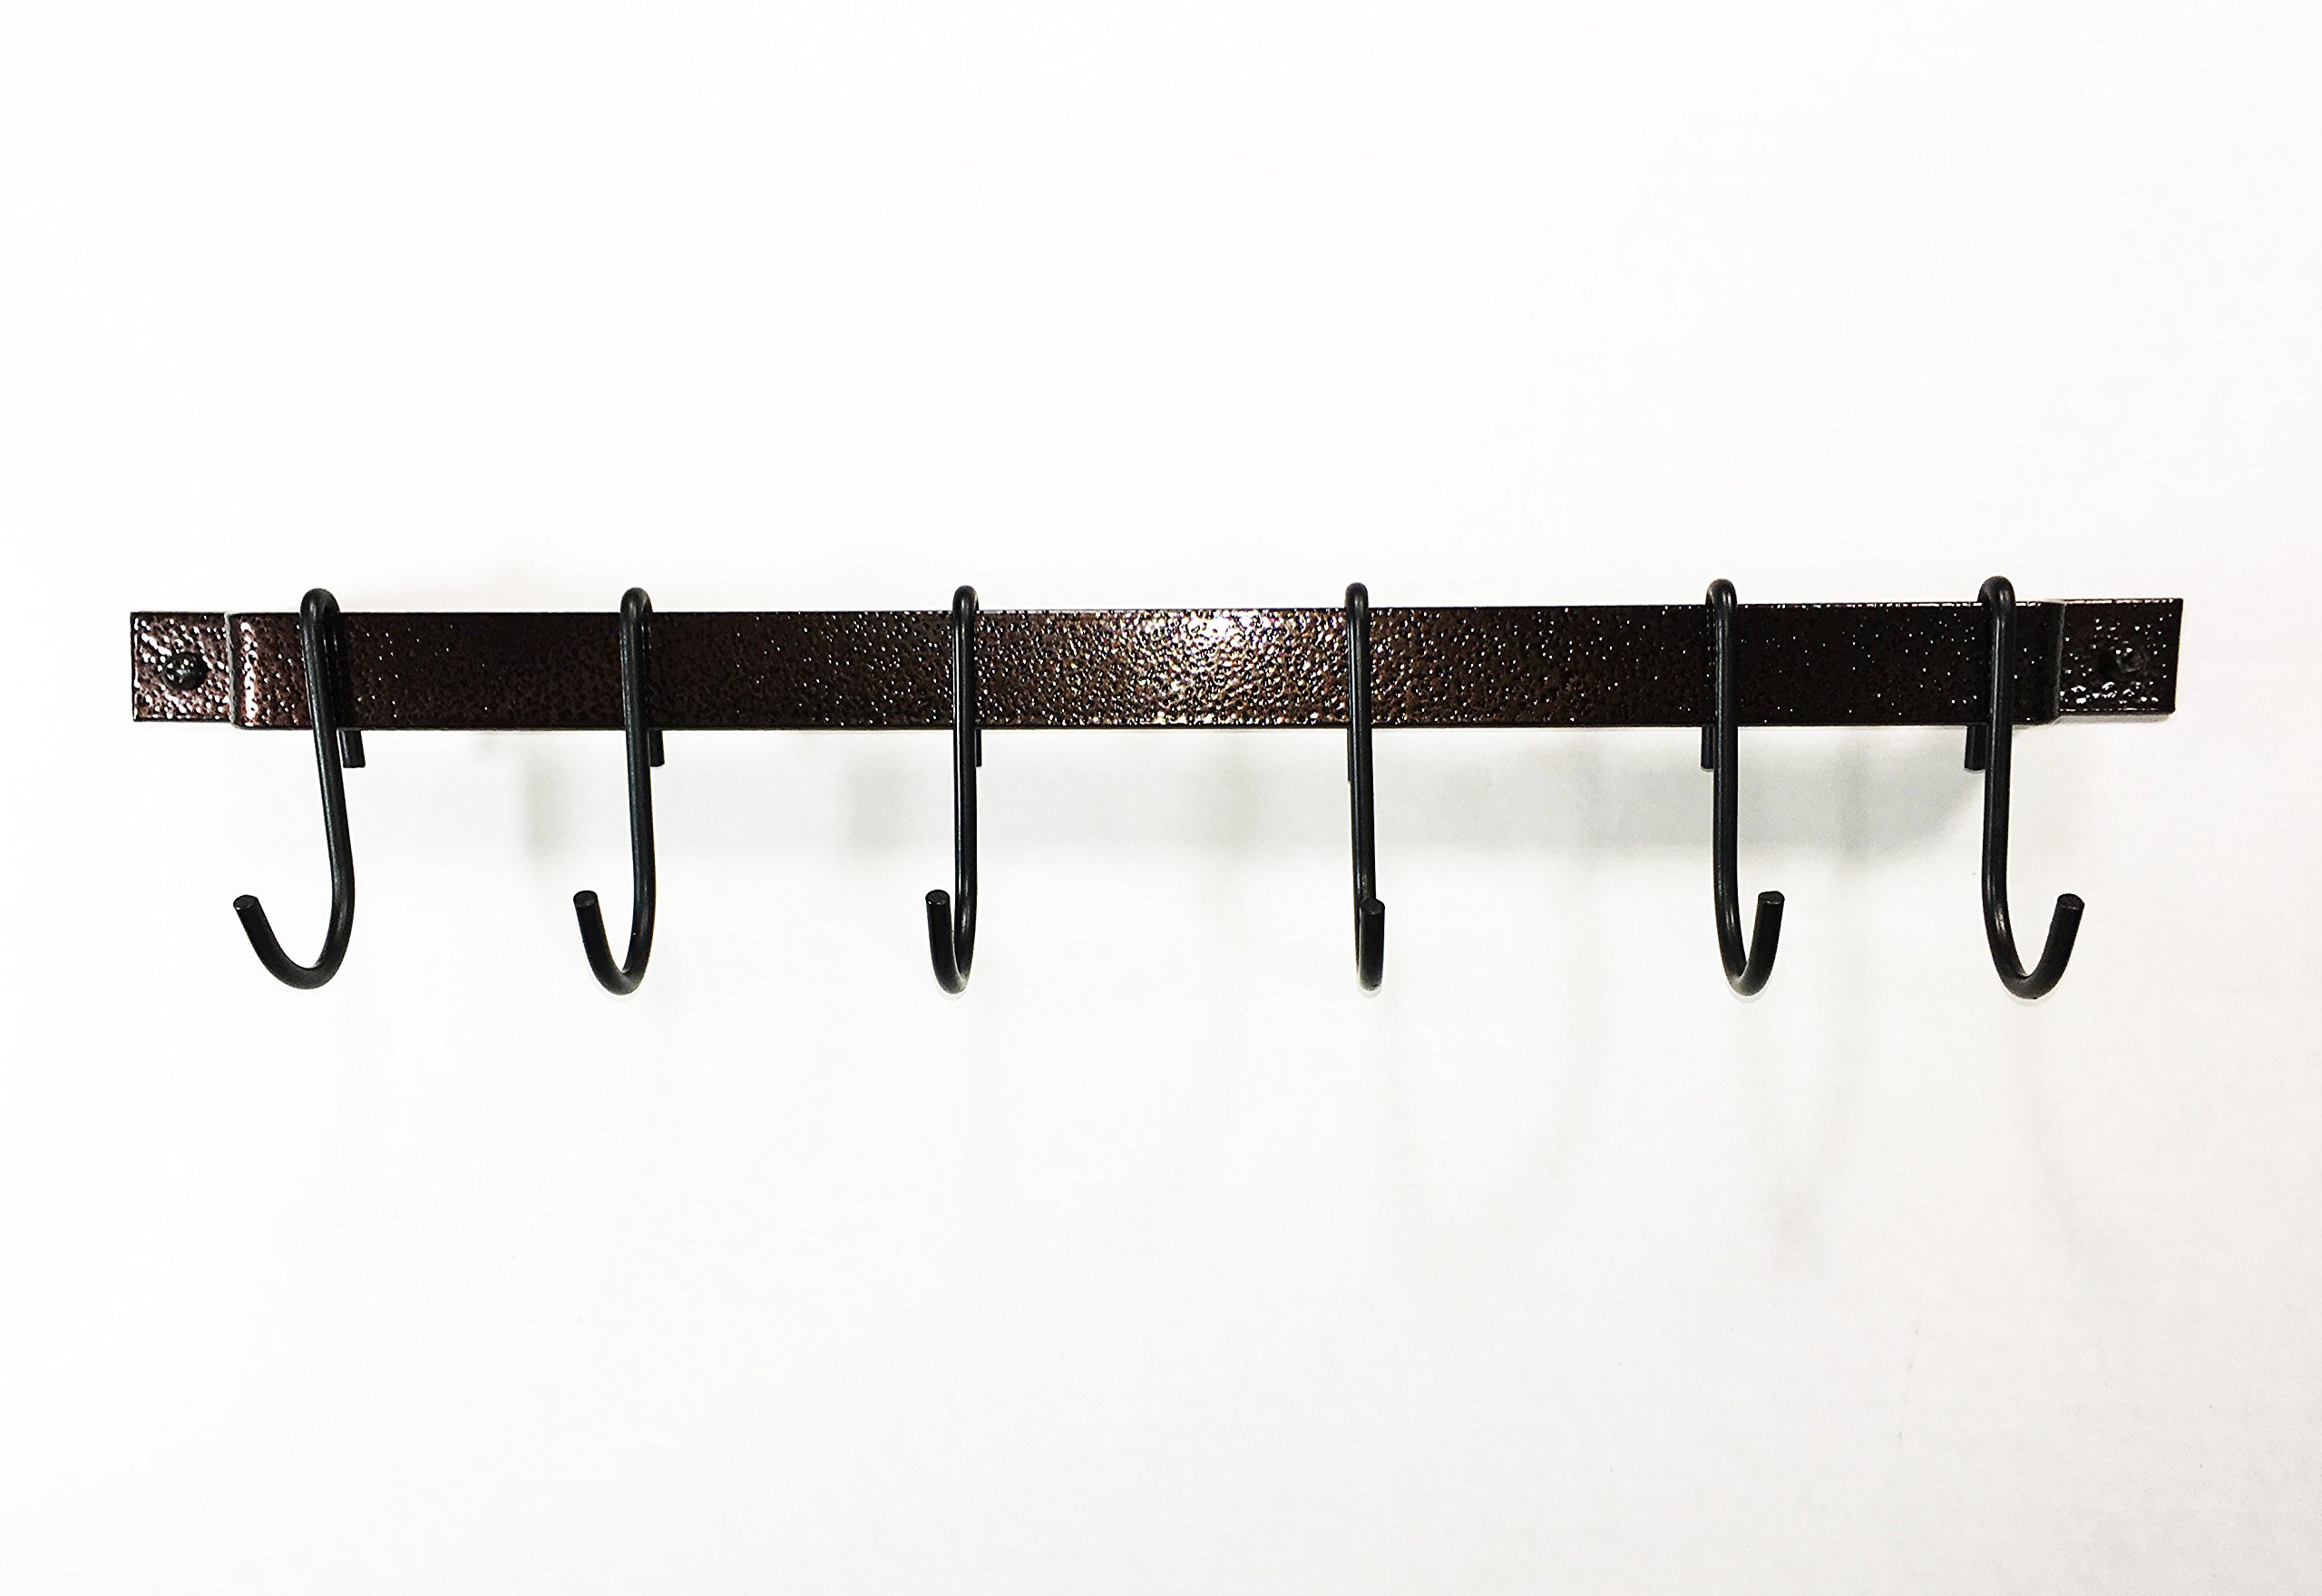 Rogar 18'' Hammered Copper Utensil or Utility Bar Rack by Rogar